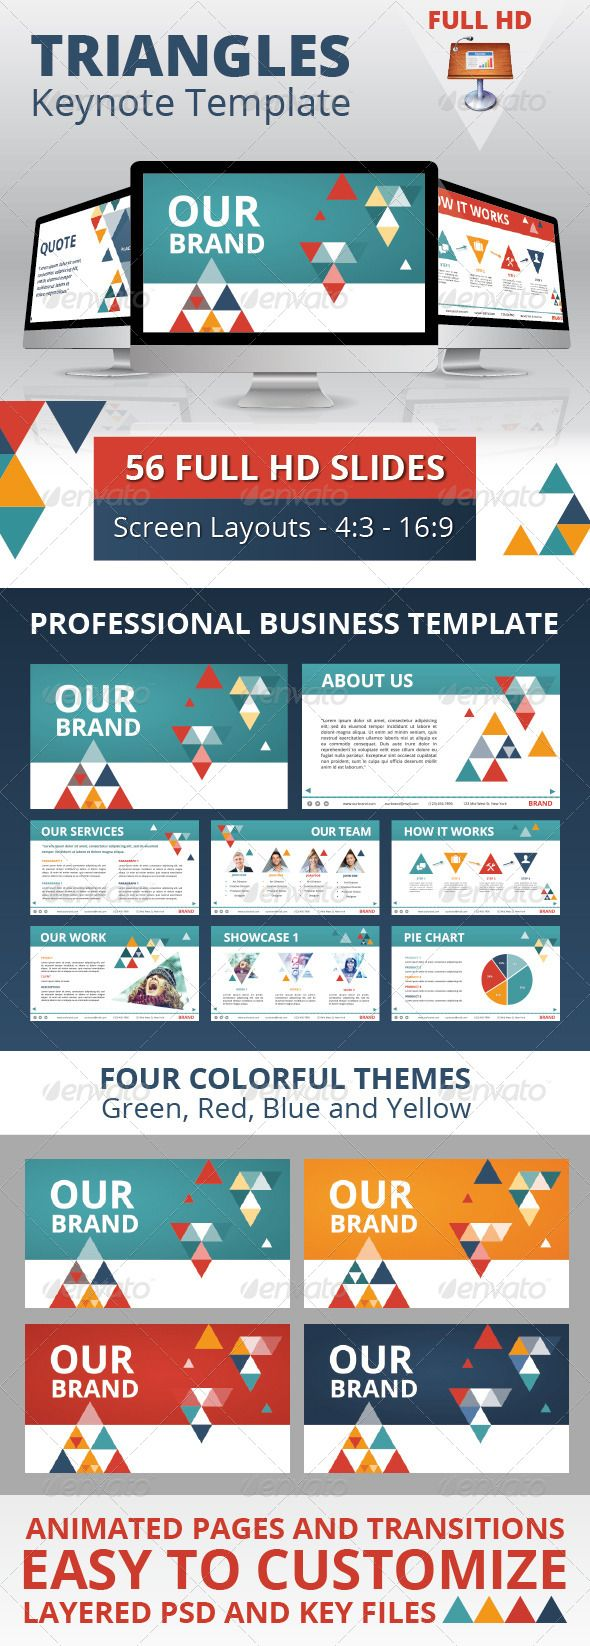 Triangles Business Keynote Template | Keynote theme / template